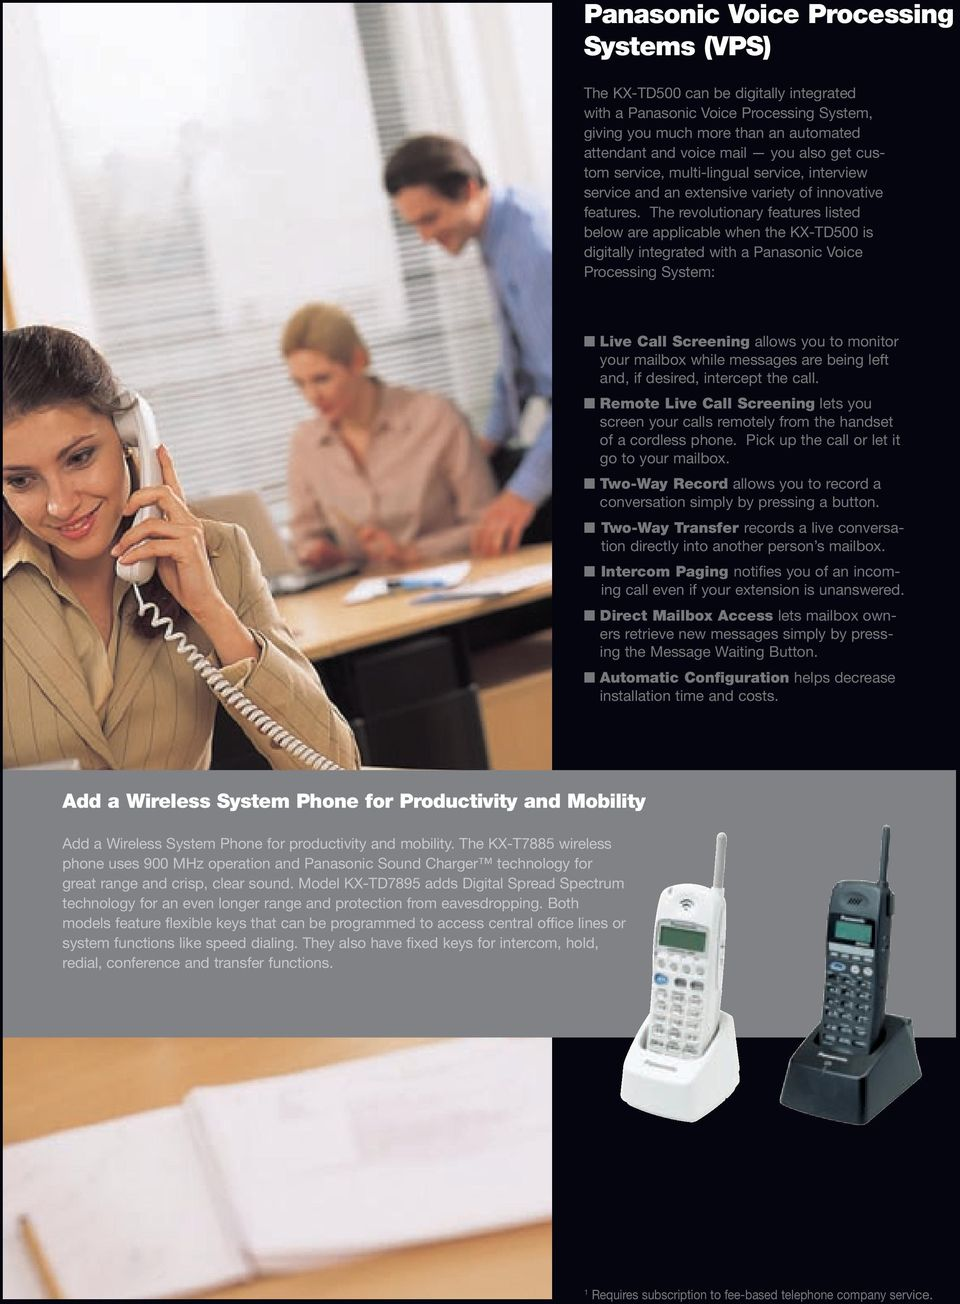 The revolutionary features listed below are applicable when the KX-TD500 is digitally integrated with a Panasonic Voice Processing System: Live Call Screening allows you to monitor your mailbox while